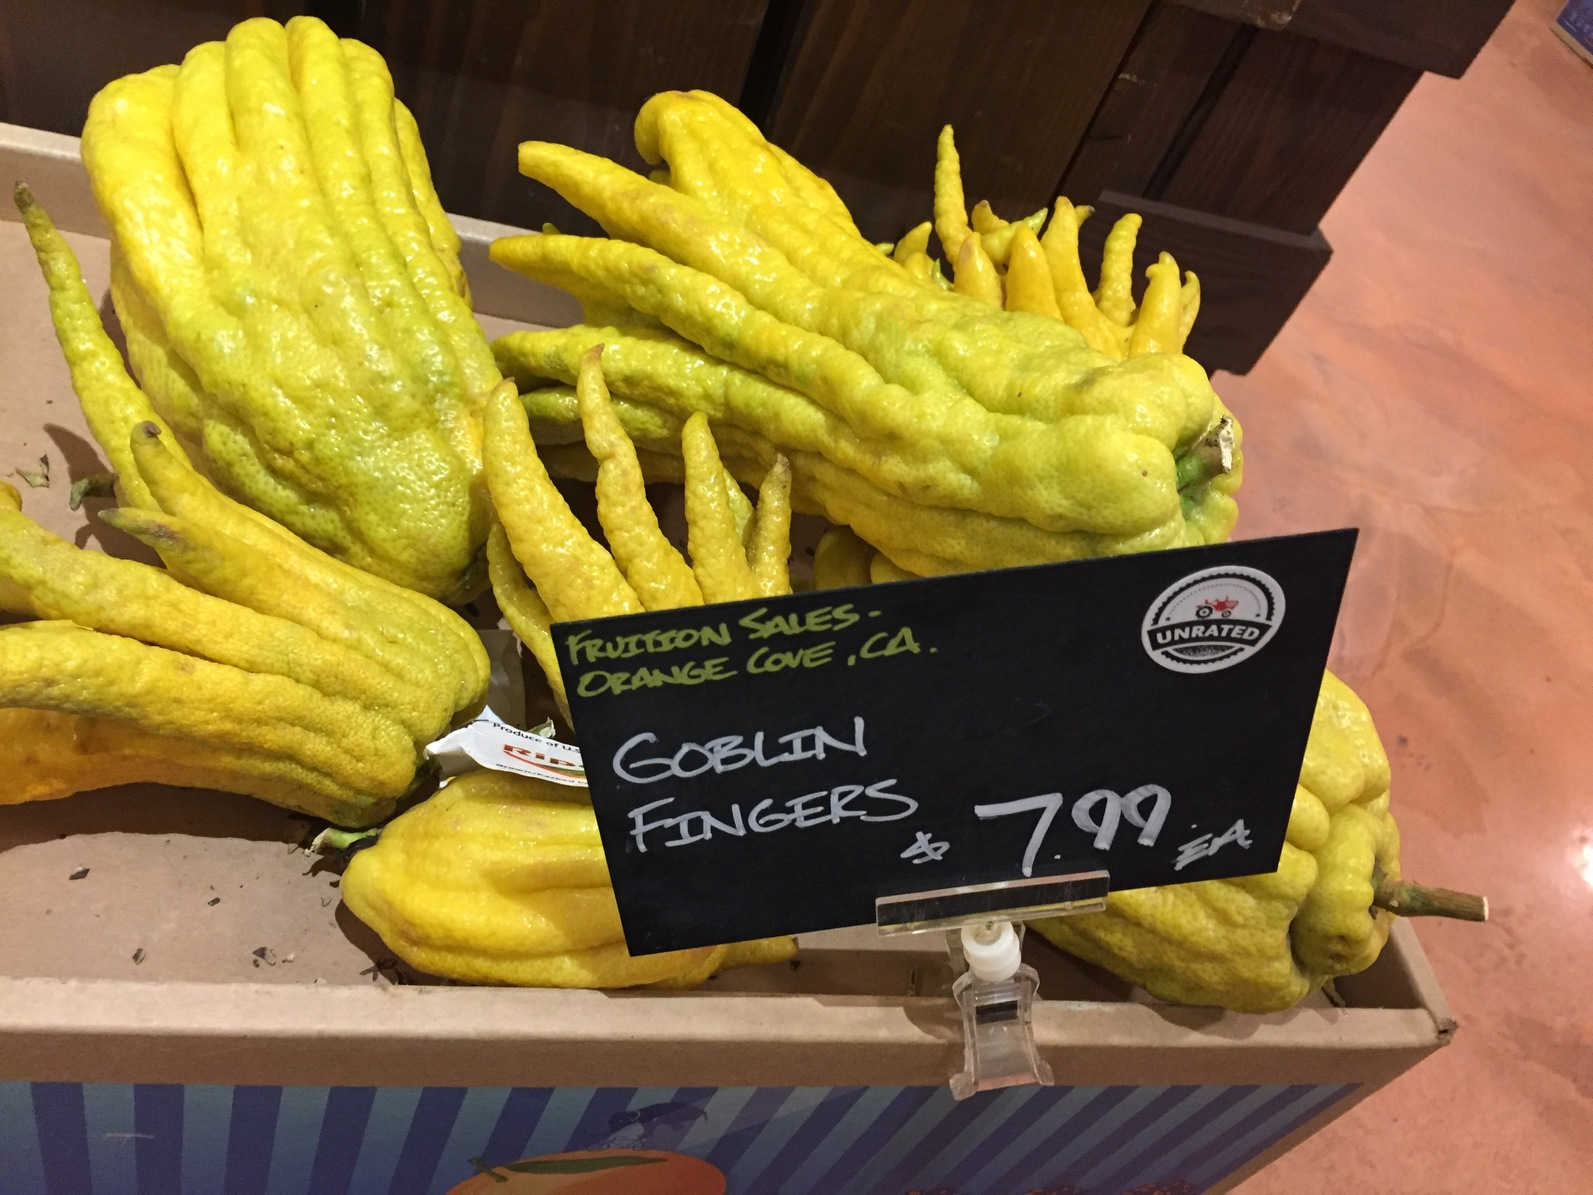 Thanks to this wonderful grocer's imagination, I bring you...goblin fingers!